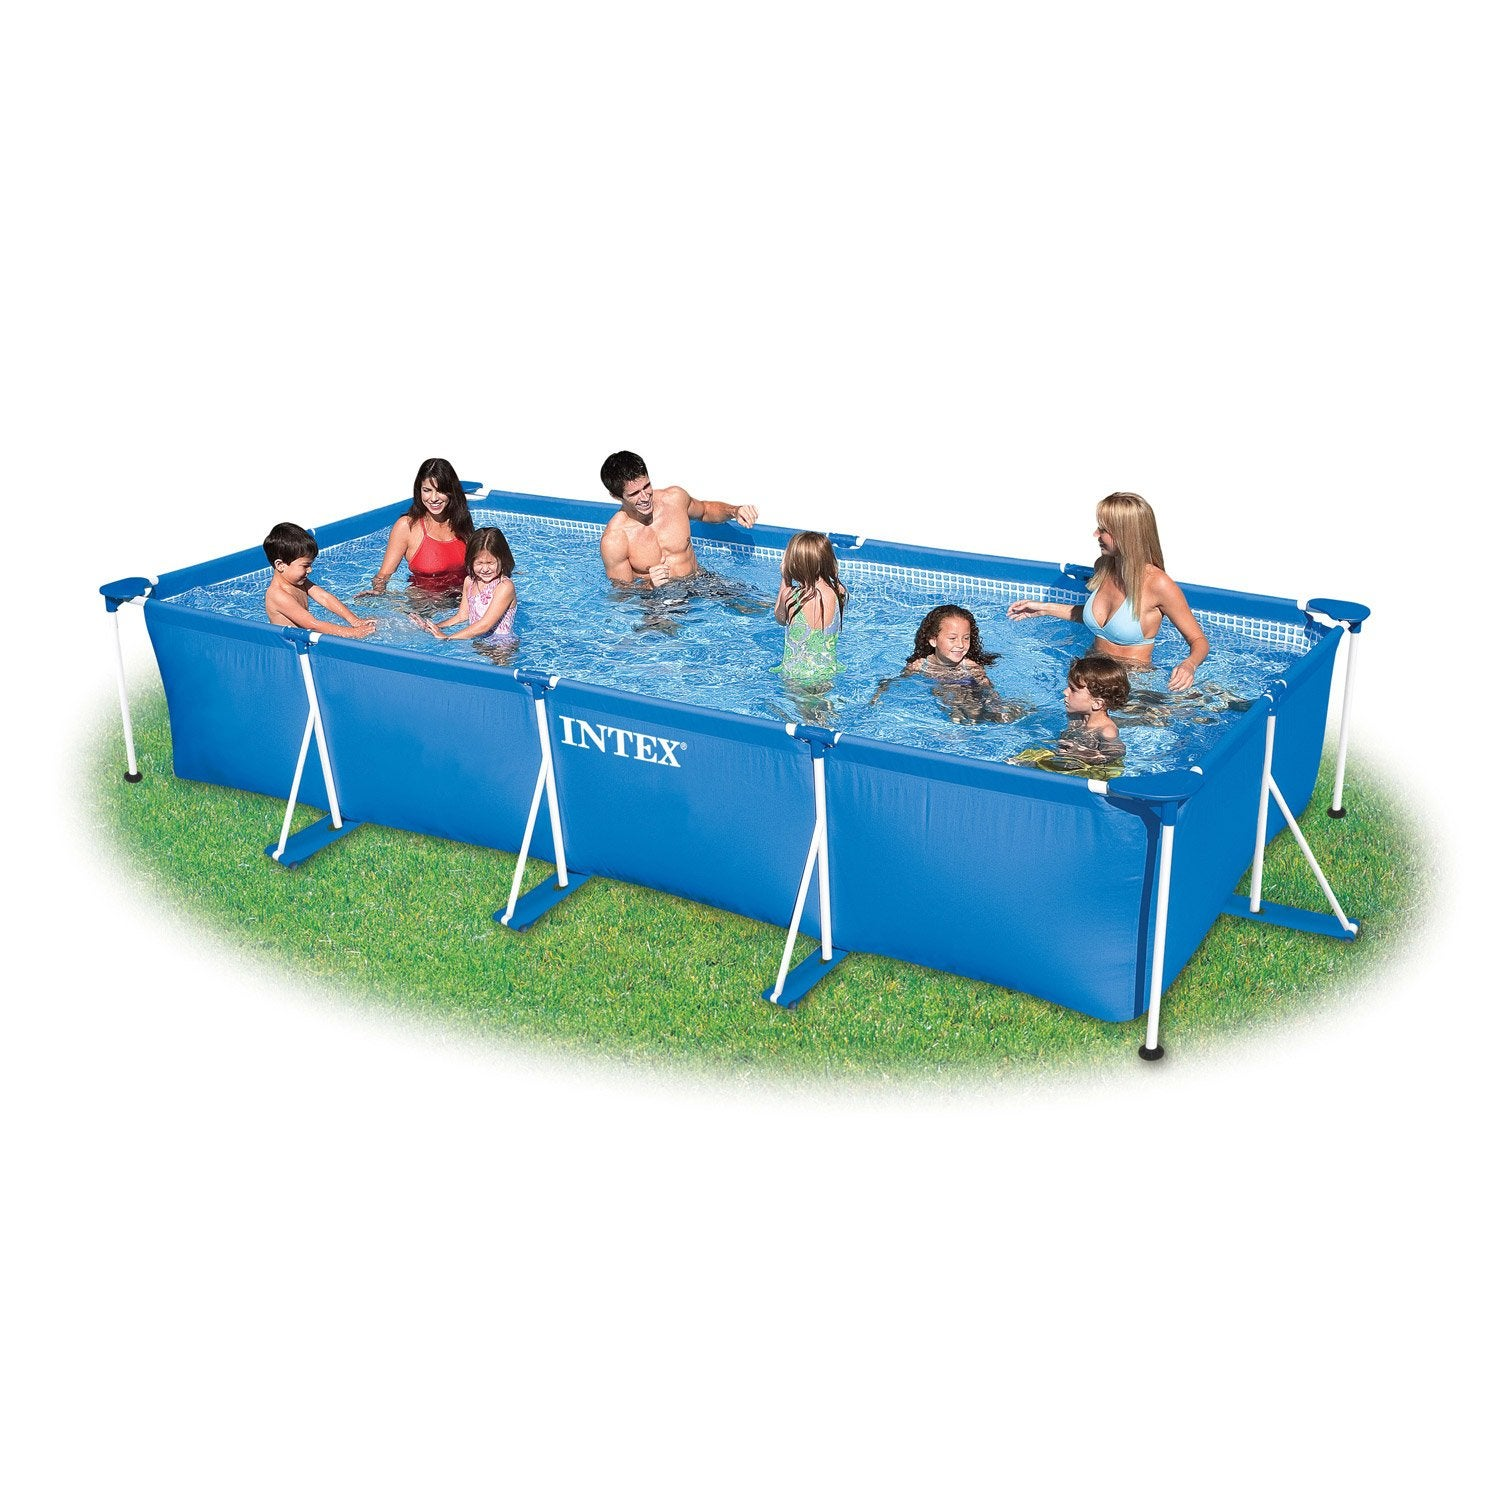 Piscine hors sol autoportante tubulaire intex l x l for Piscine dans le sol